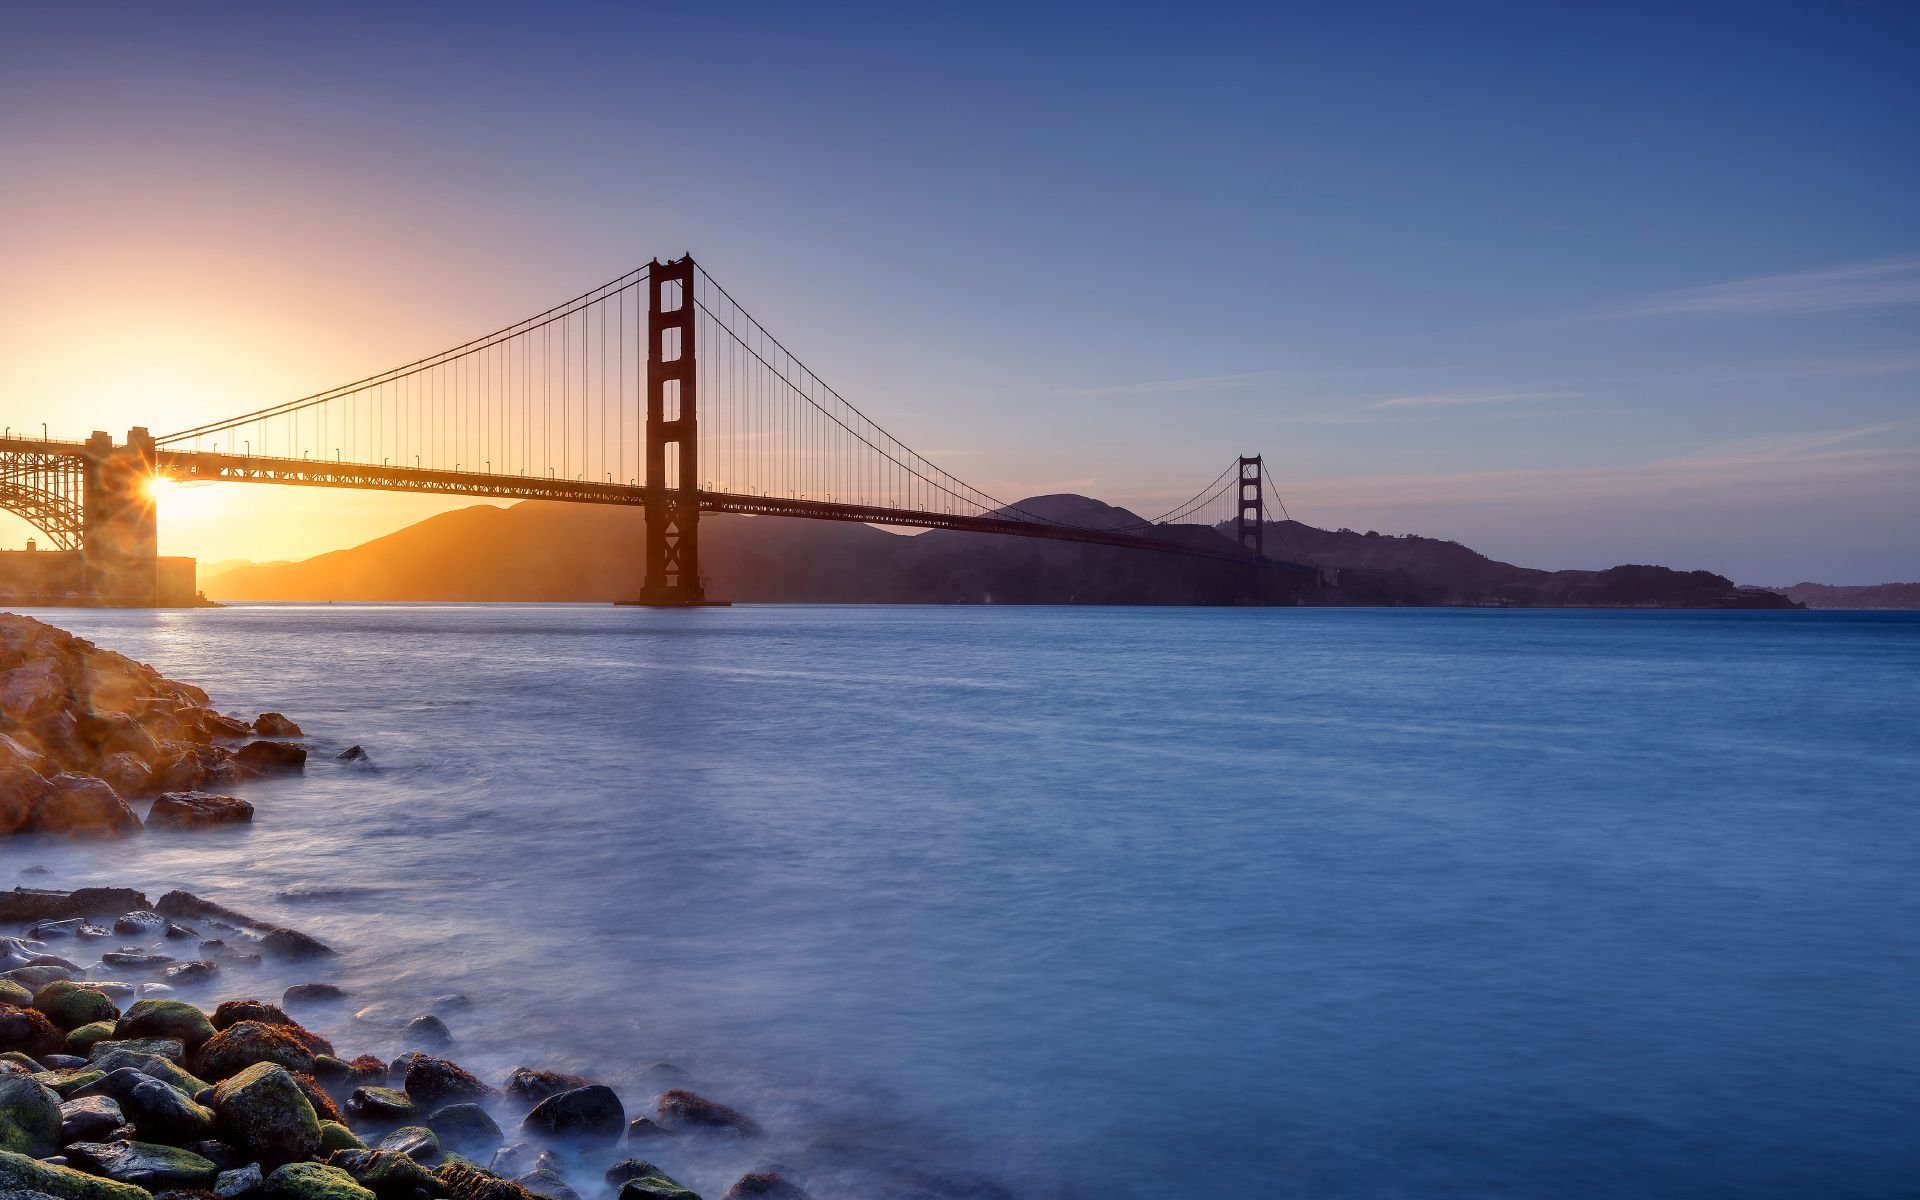 Sunset Golden Gate Bridge Photos HD Wallpapers